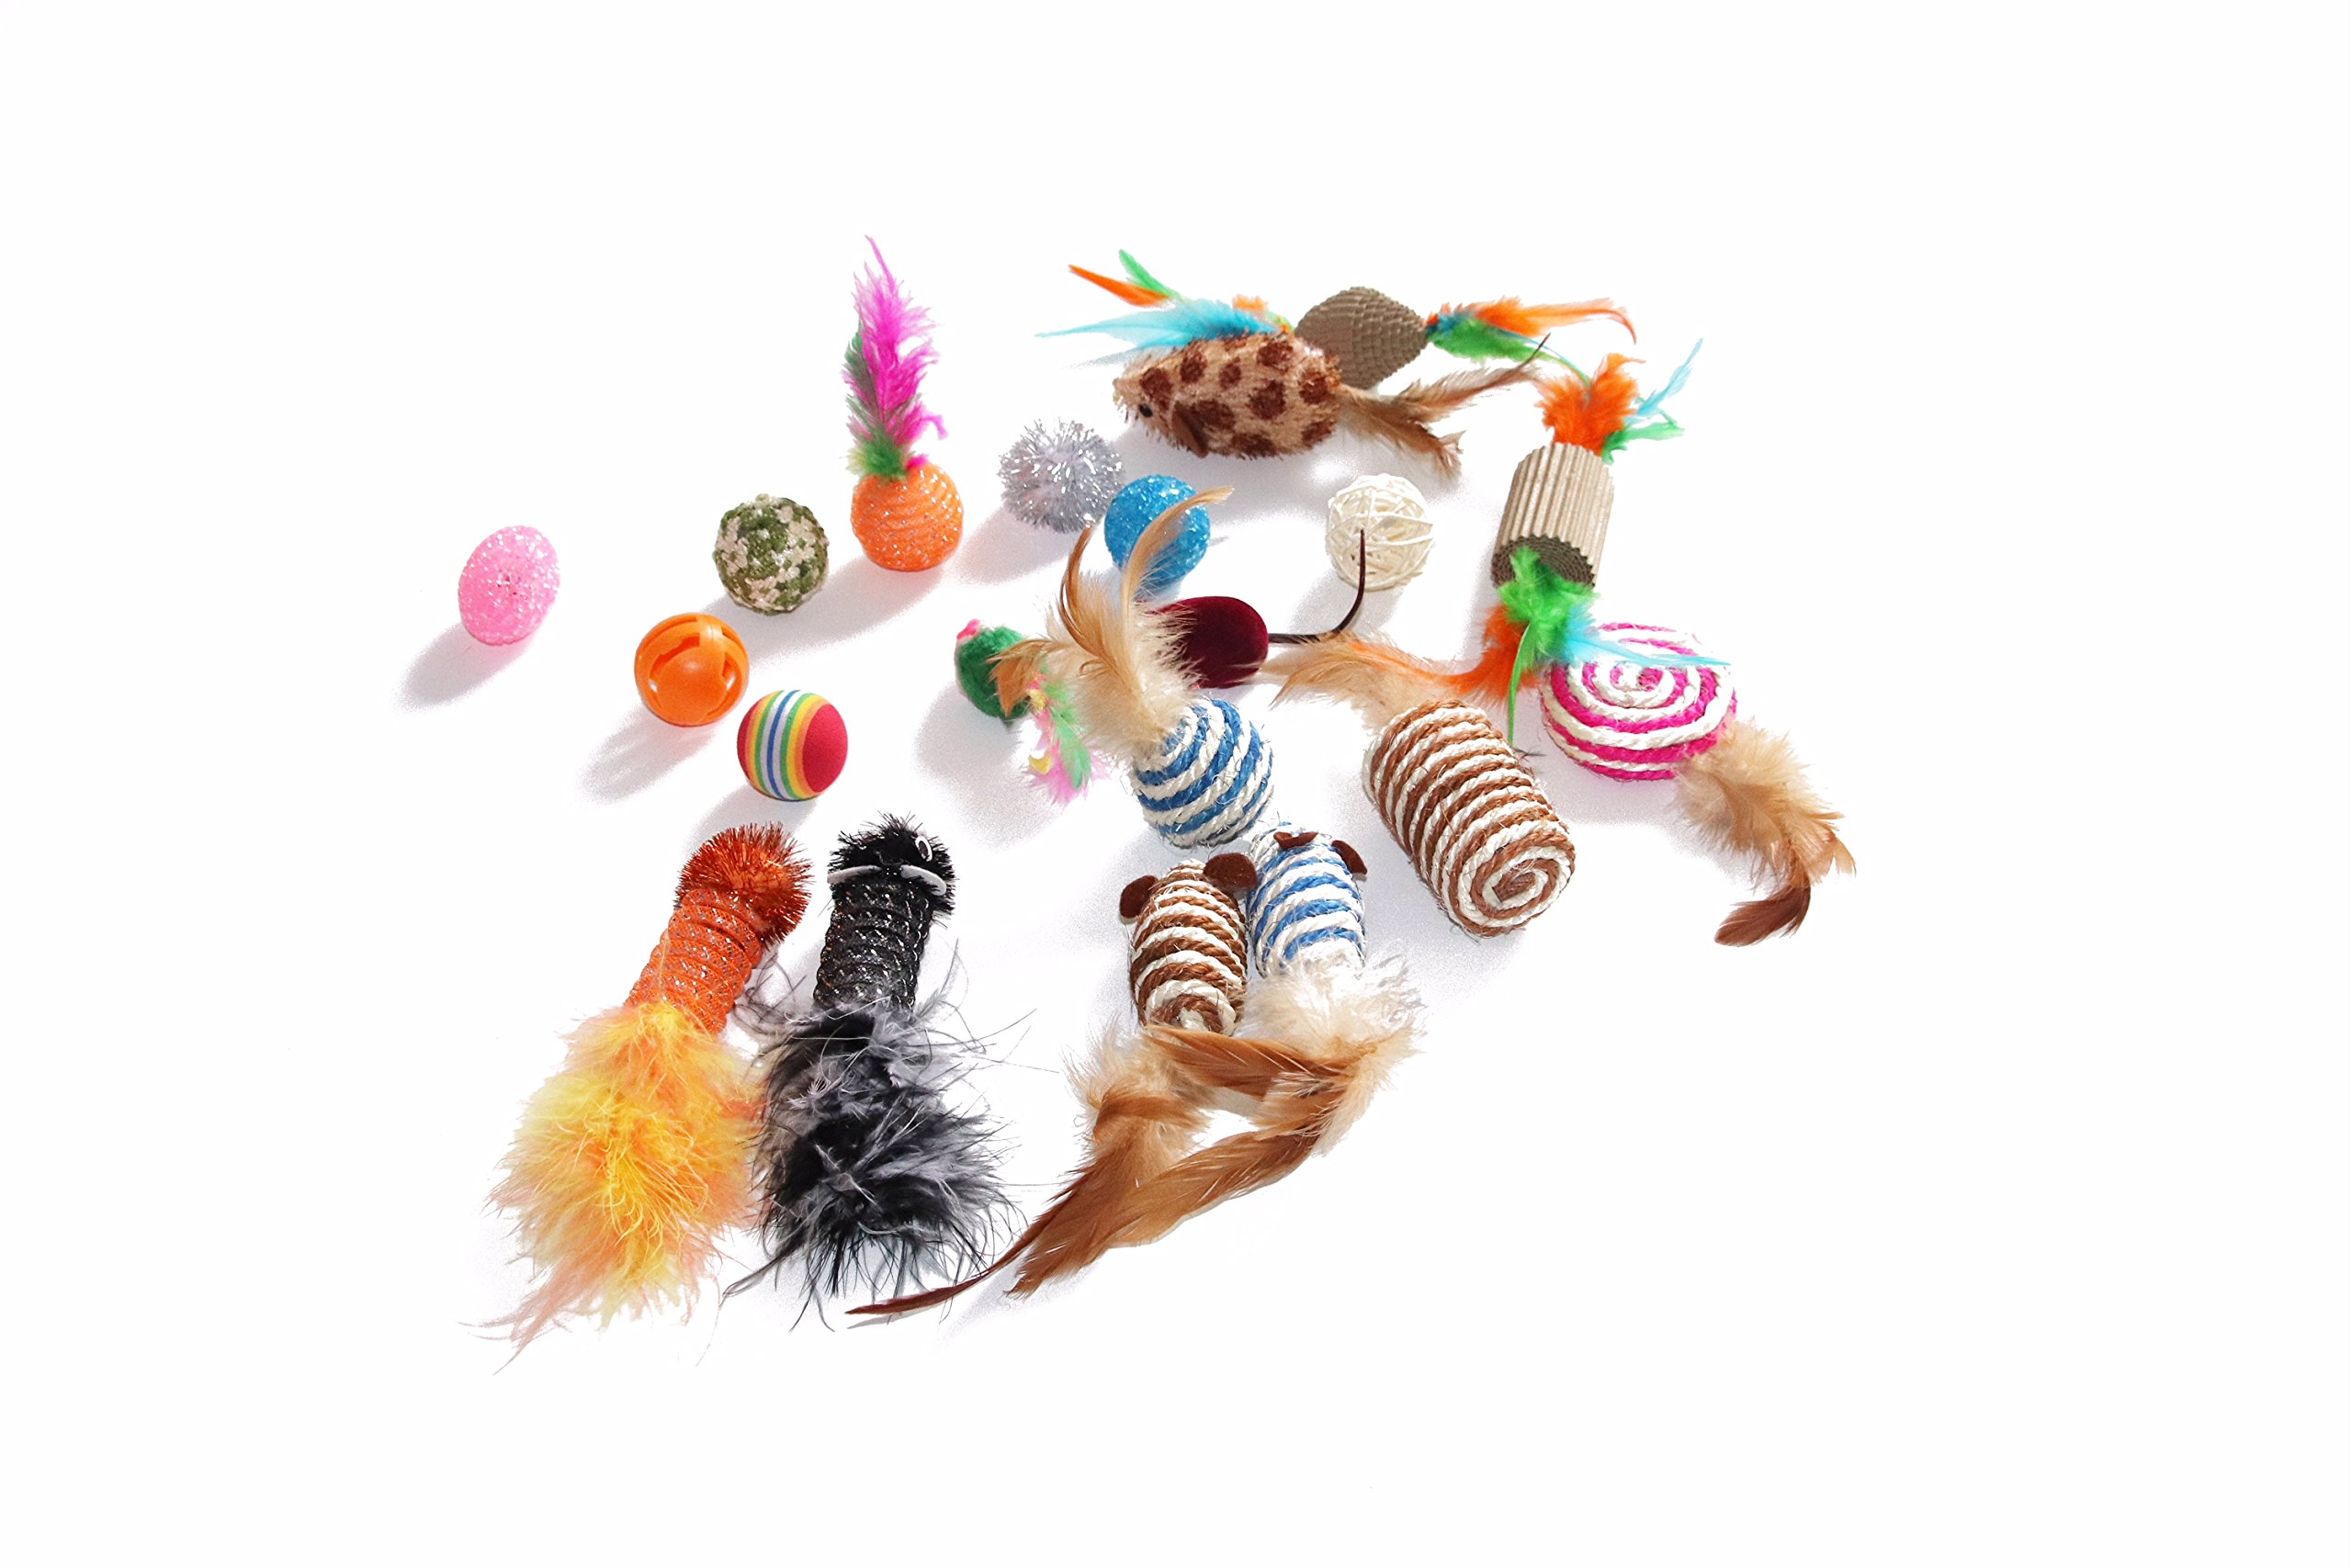 Neos pet Fashion Cat toys 20 pieces Kitten toys Assorted corrugated paper toys,Feather ball toy,Spring mouse,Interactive cat scratching sisal mouse,Crinkle balls for Kitty cats